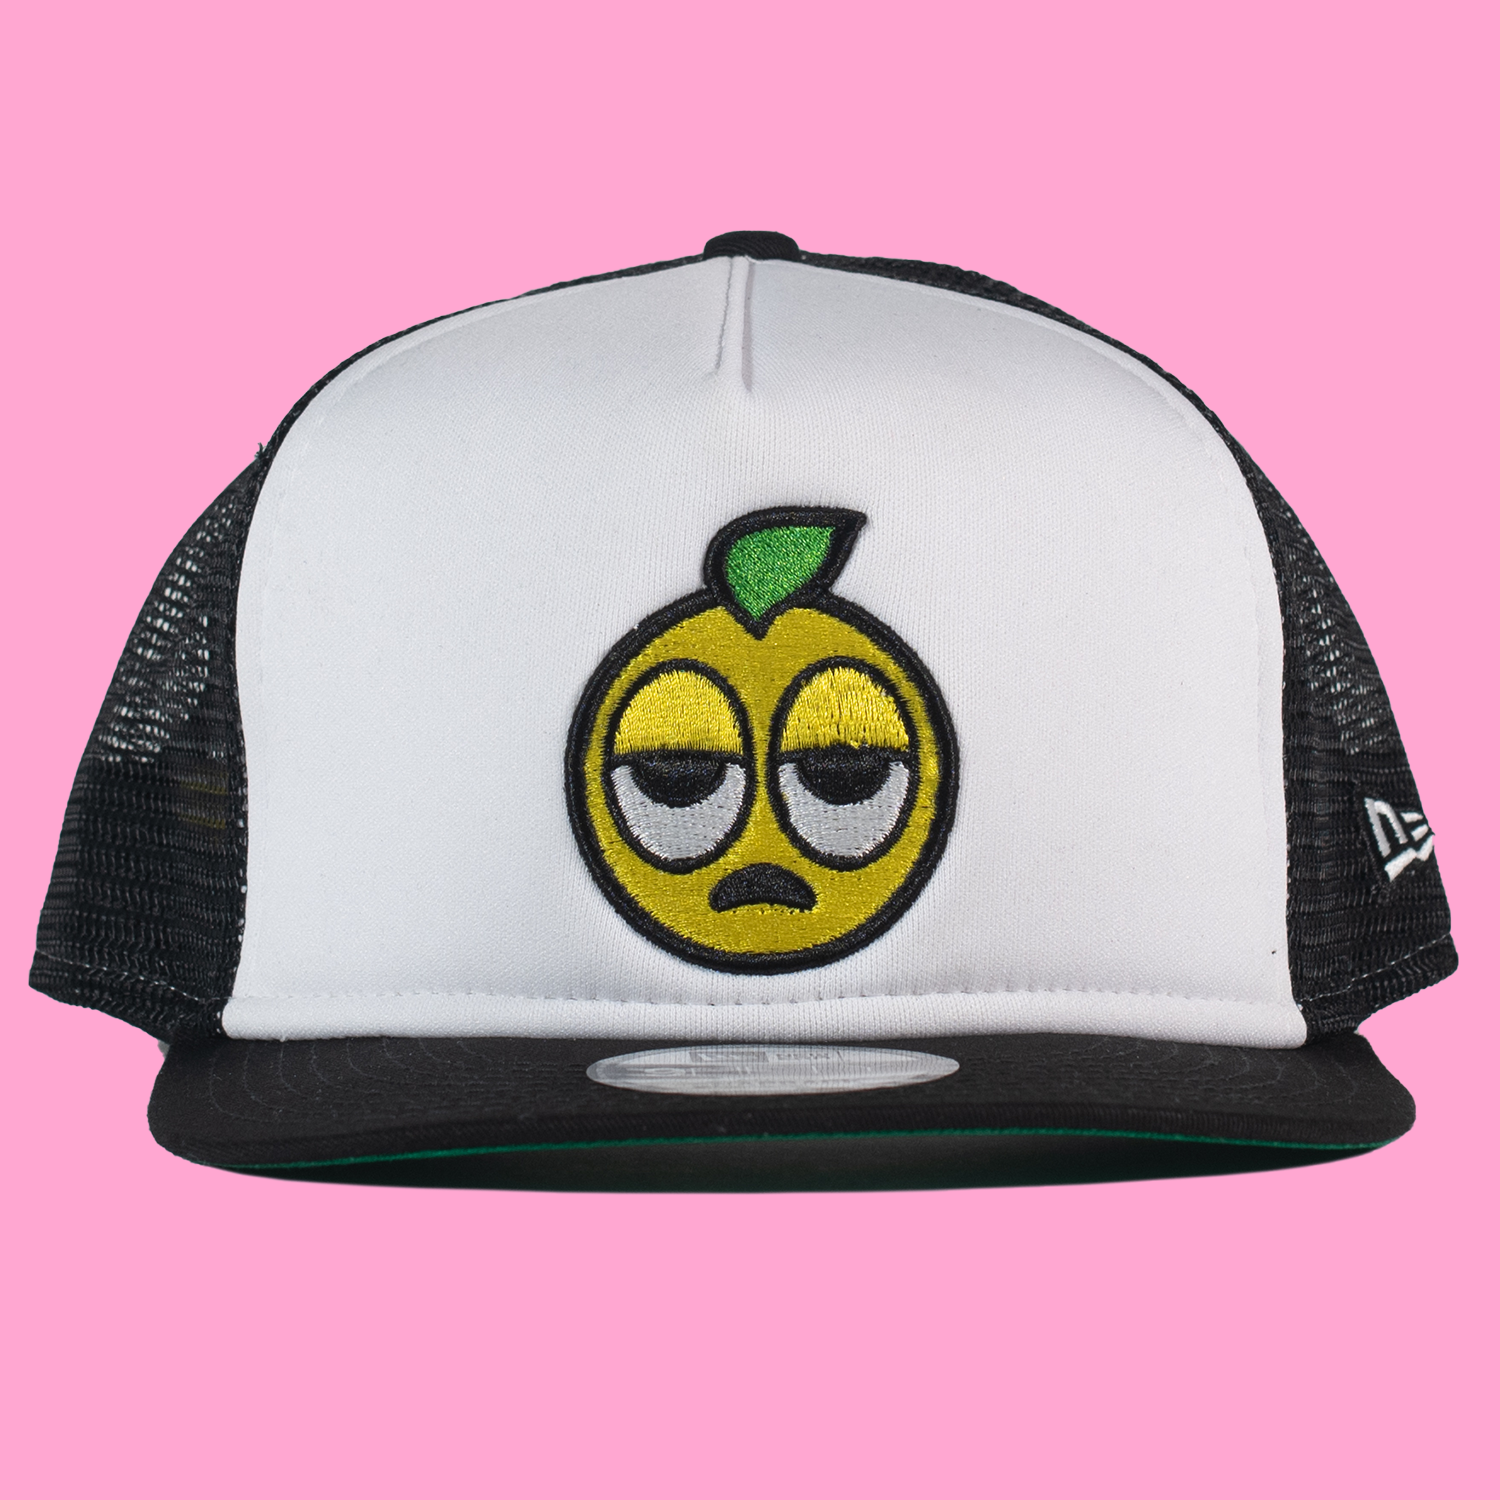 The Lemon Man New Era Trucker Hat in Black